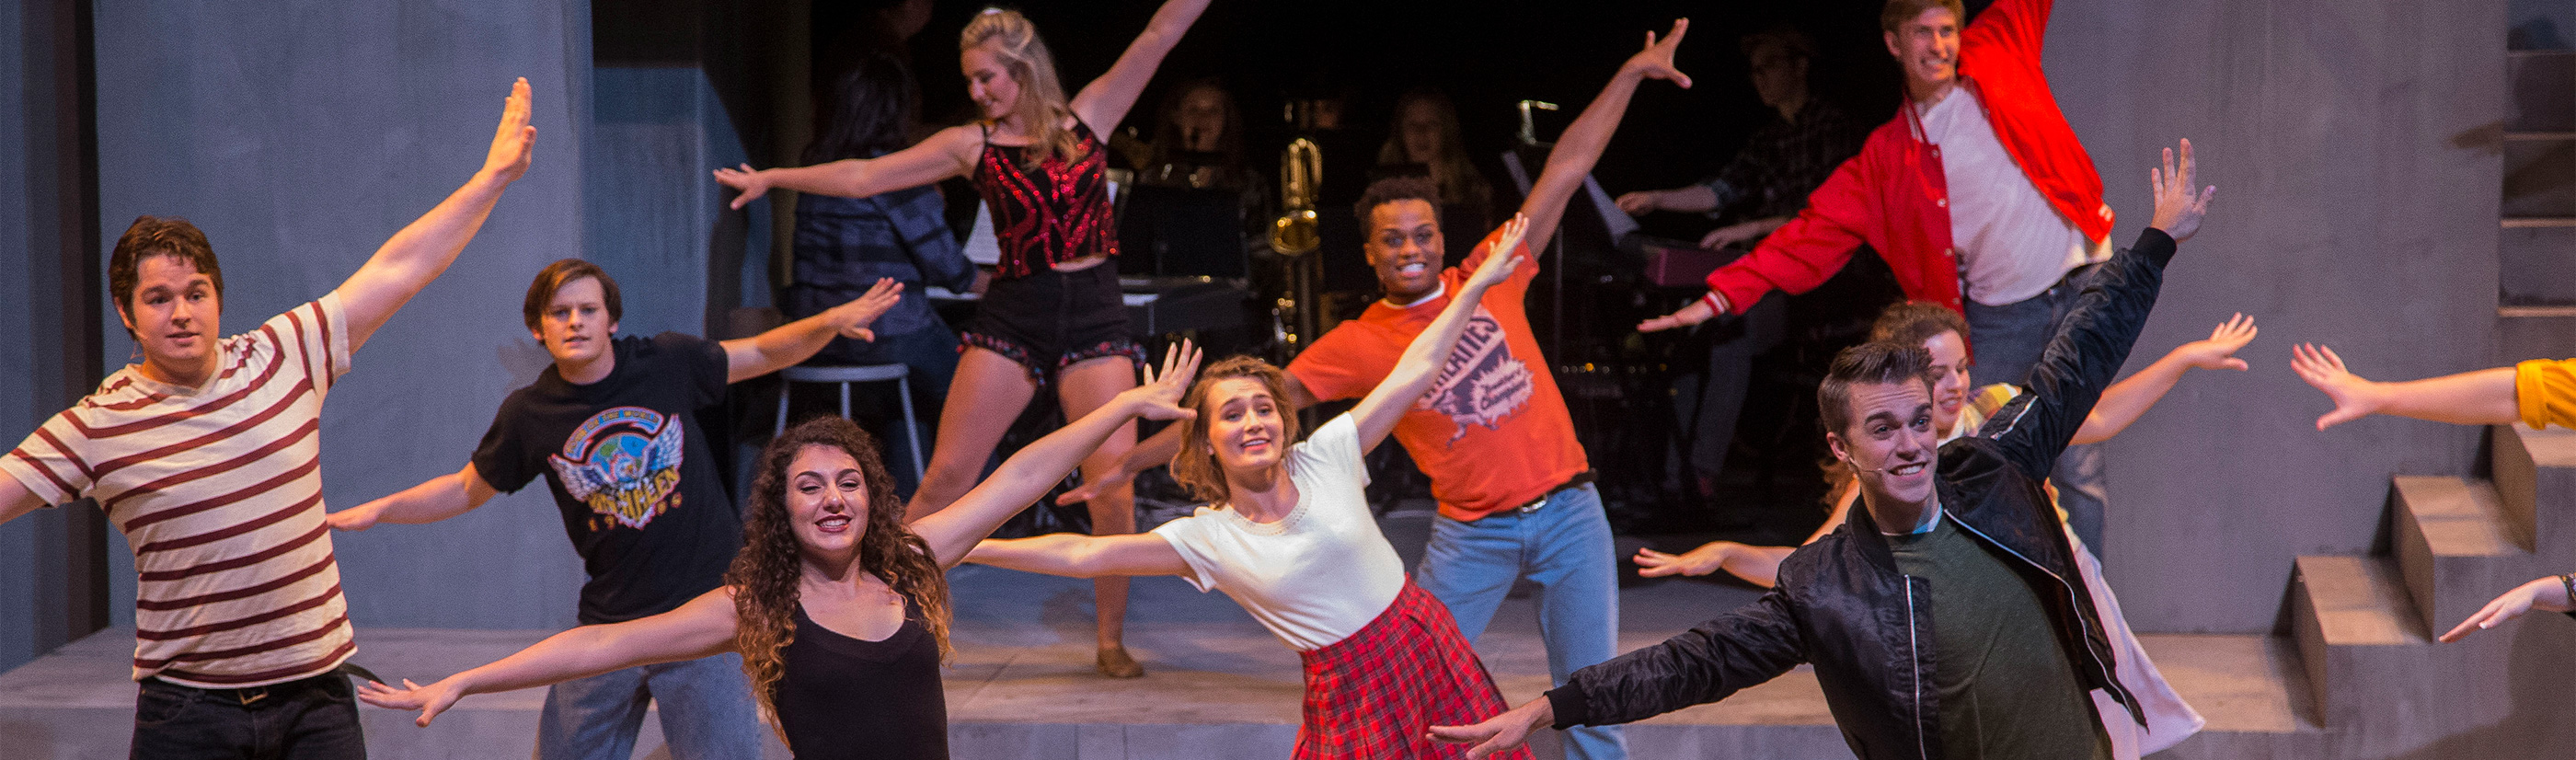 Students dancing in a production of Footloose